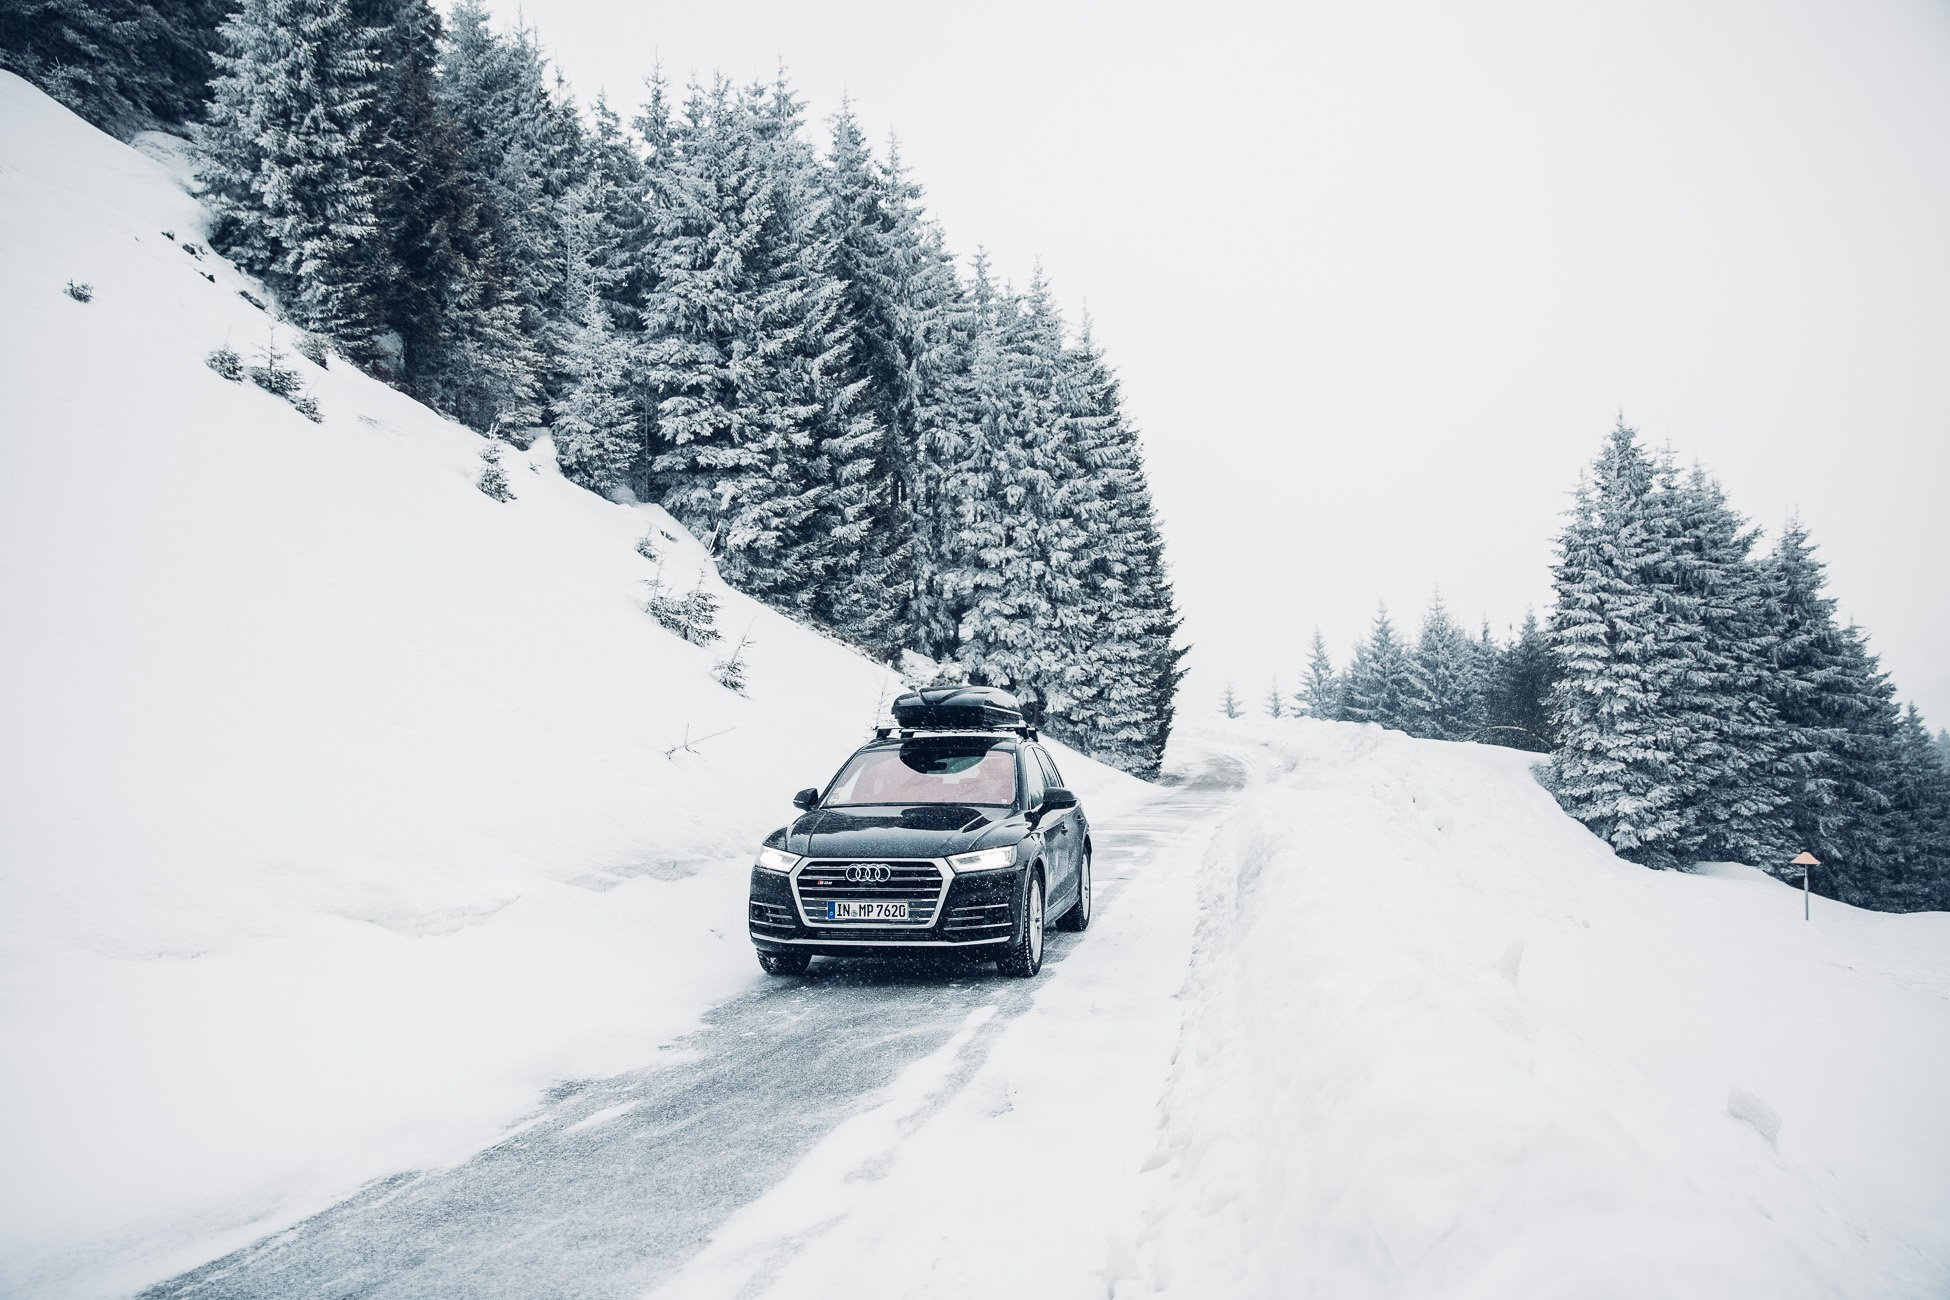 Best of the Alps Roadtrip powered by Audi